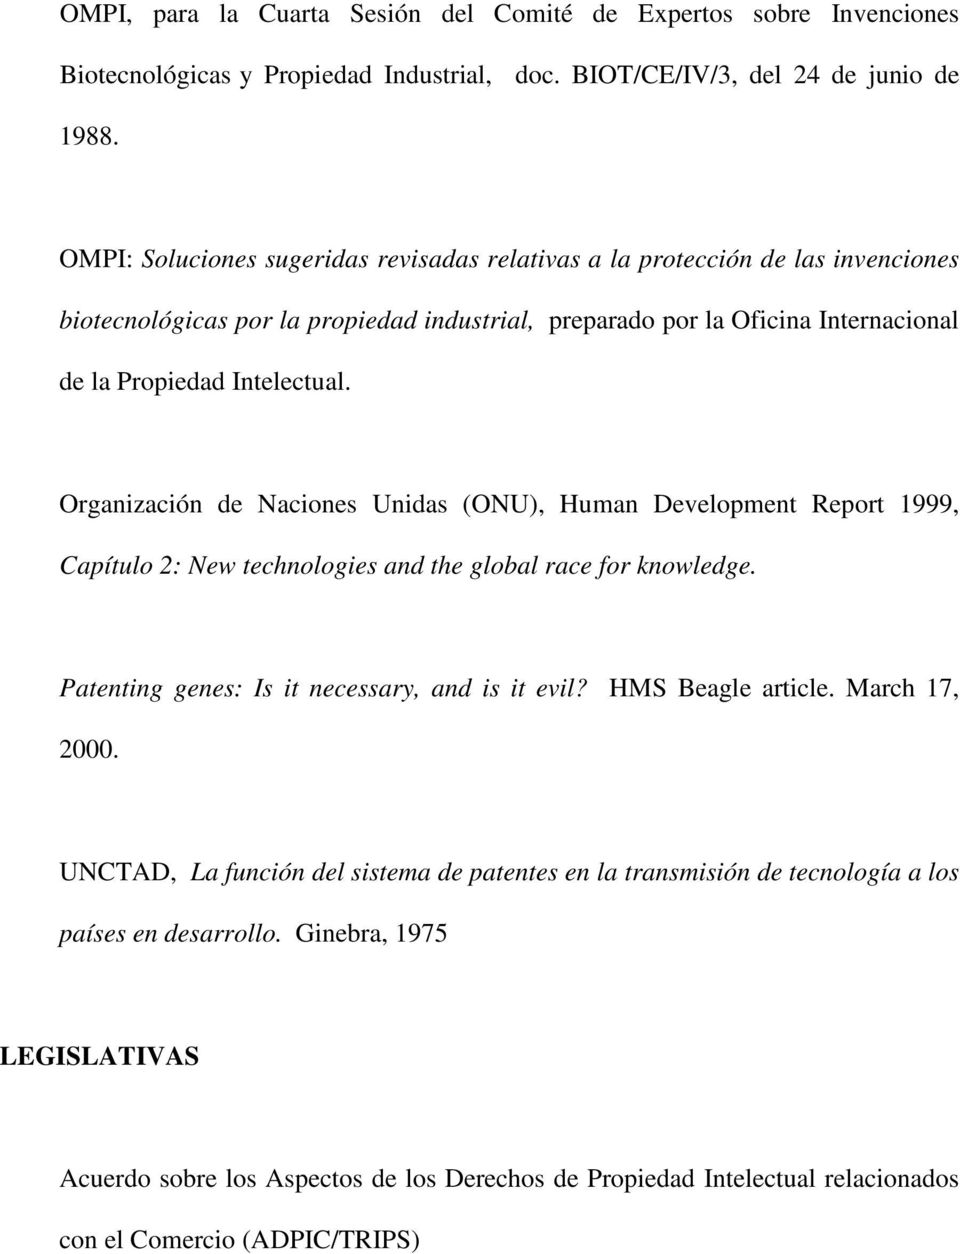 Organización de Naciones Unidas (ONU), Human Development Report 1999, Capítulo 2: New technologies and the global race for knowledge. Patenting genes: Is it necessary, and is it evil?